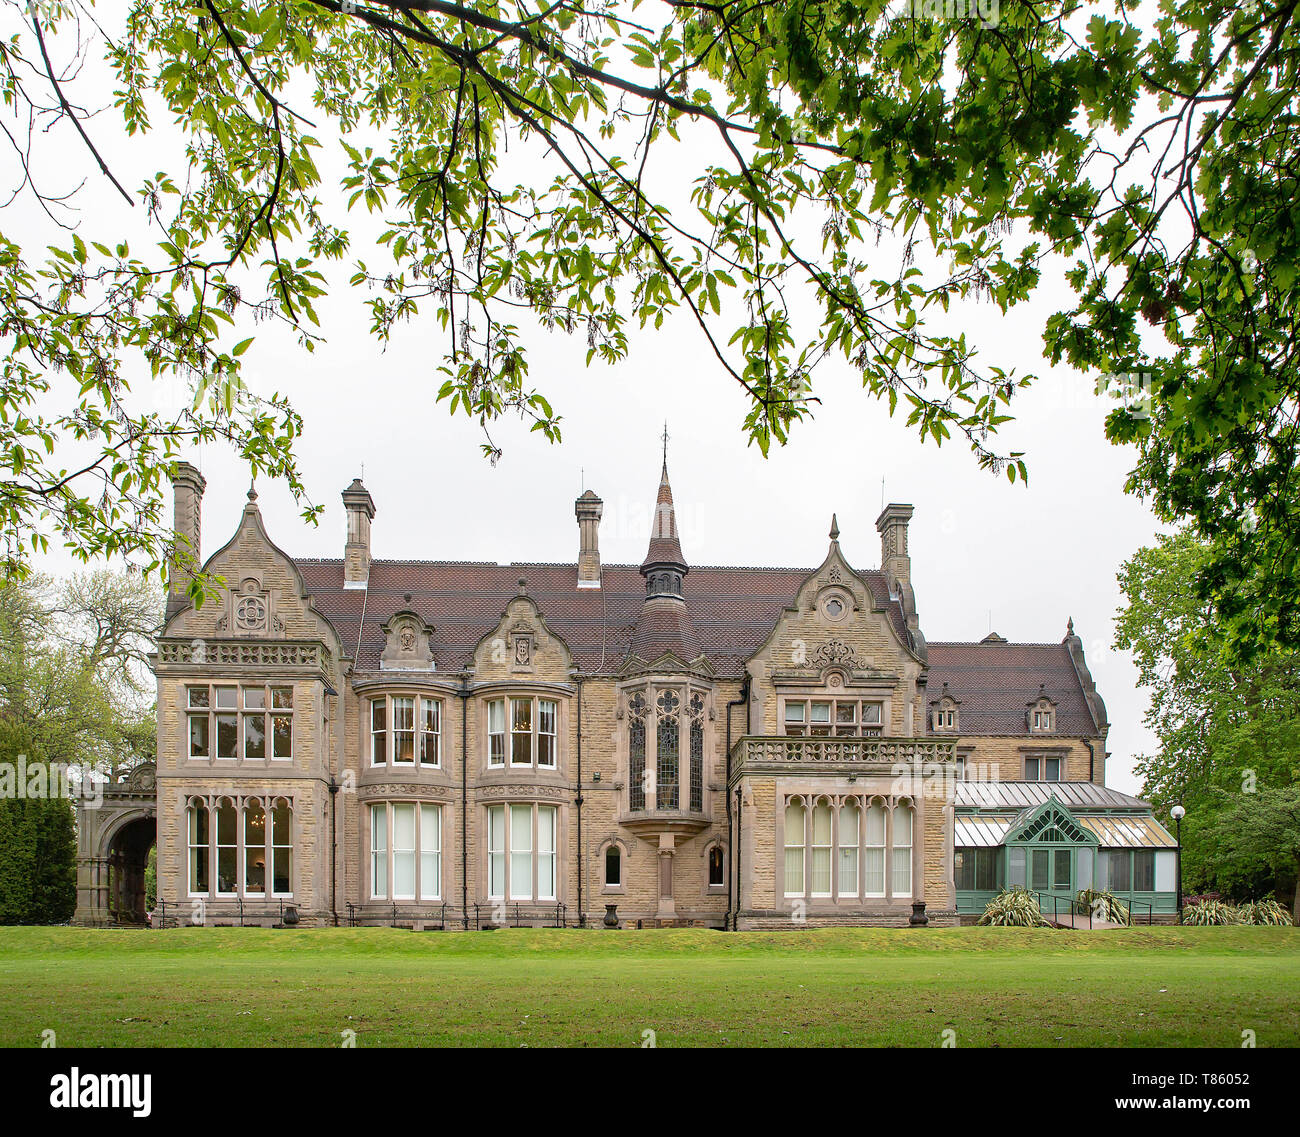 Denzell House within the ornate gardens, Dunham Rd, Bowdon, Trafford, Greater Manchester - Stock Image